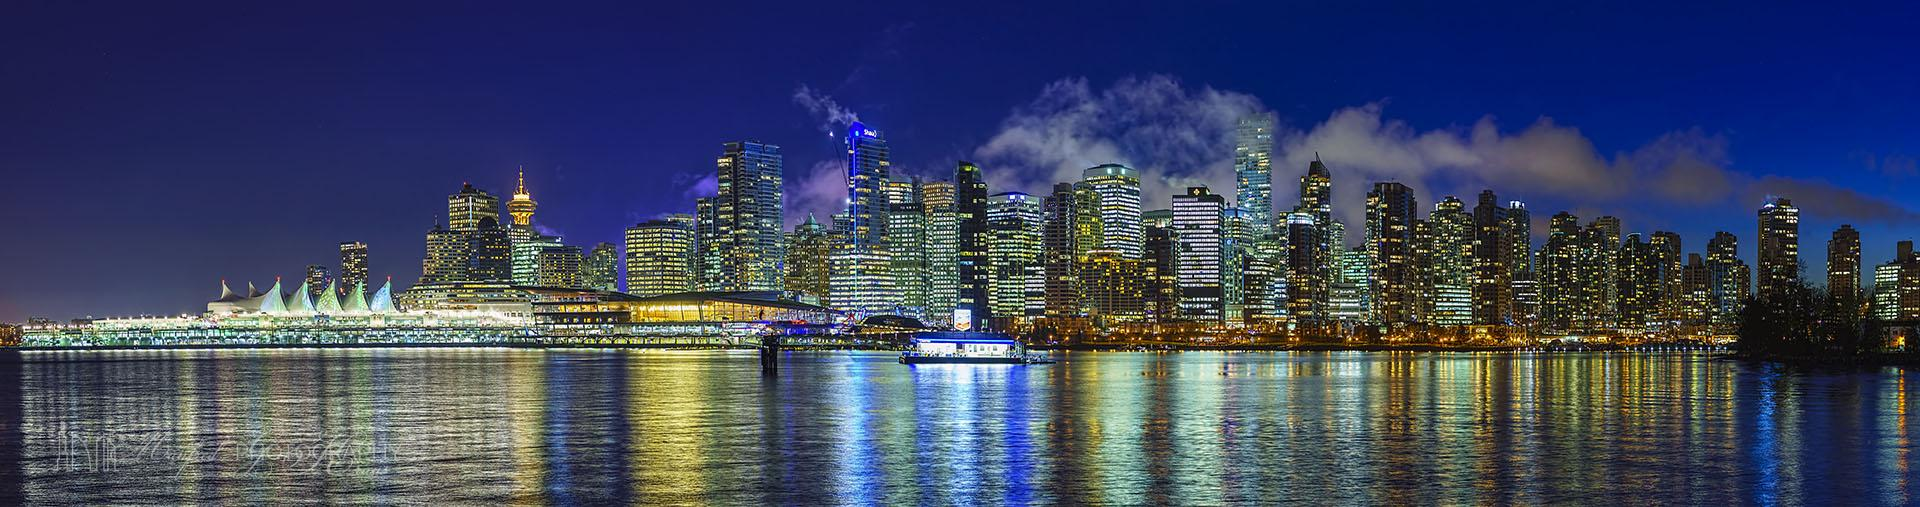 Vancouver Night Skyline VN232A1